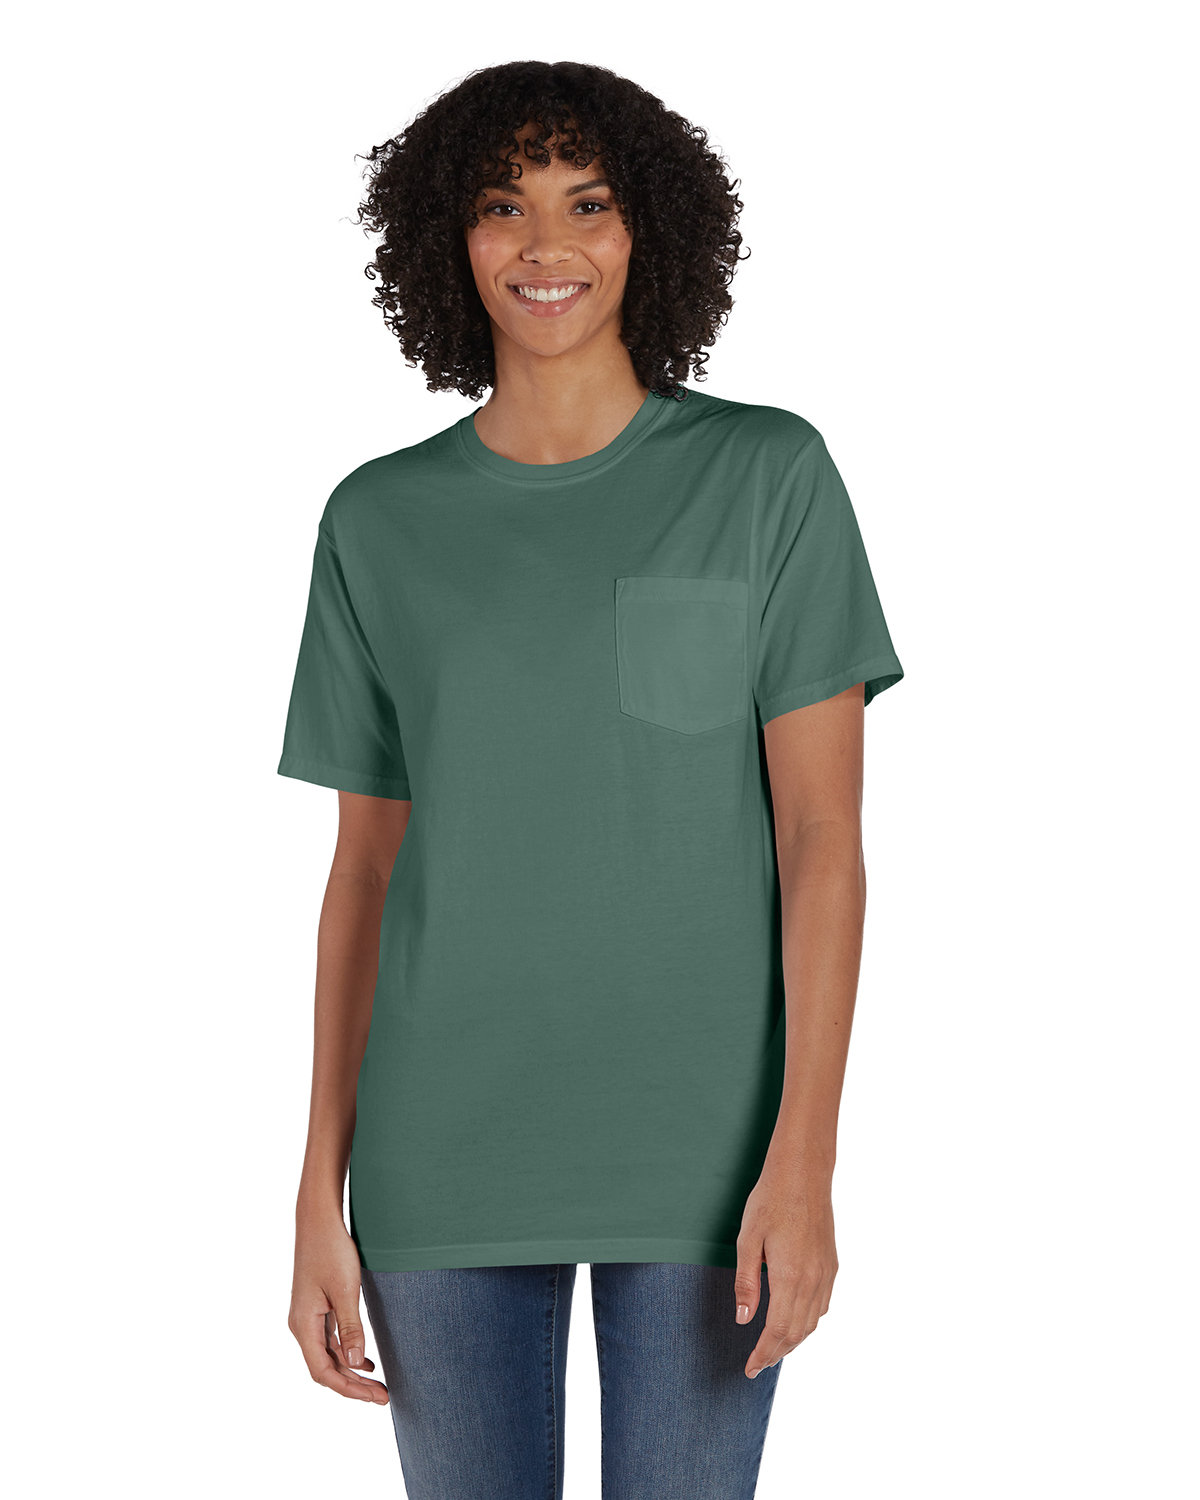 ComfortWash by Hanes Unisex Garment-Dyed T-Shirt with Pocket CYPRESS GREEN